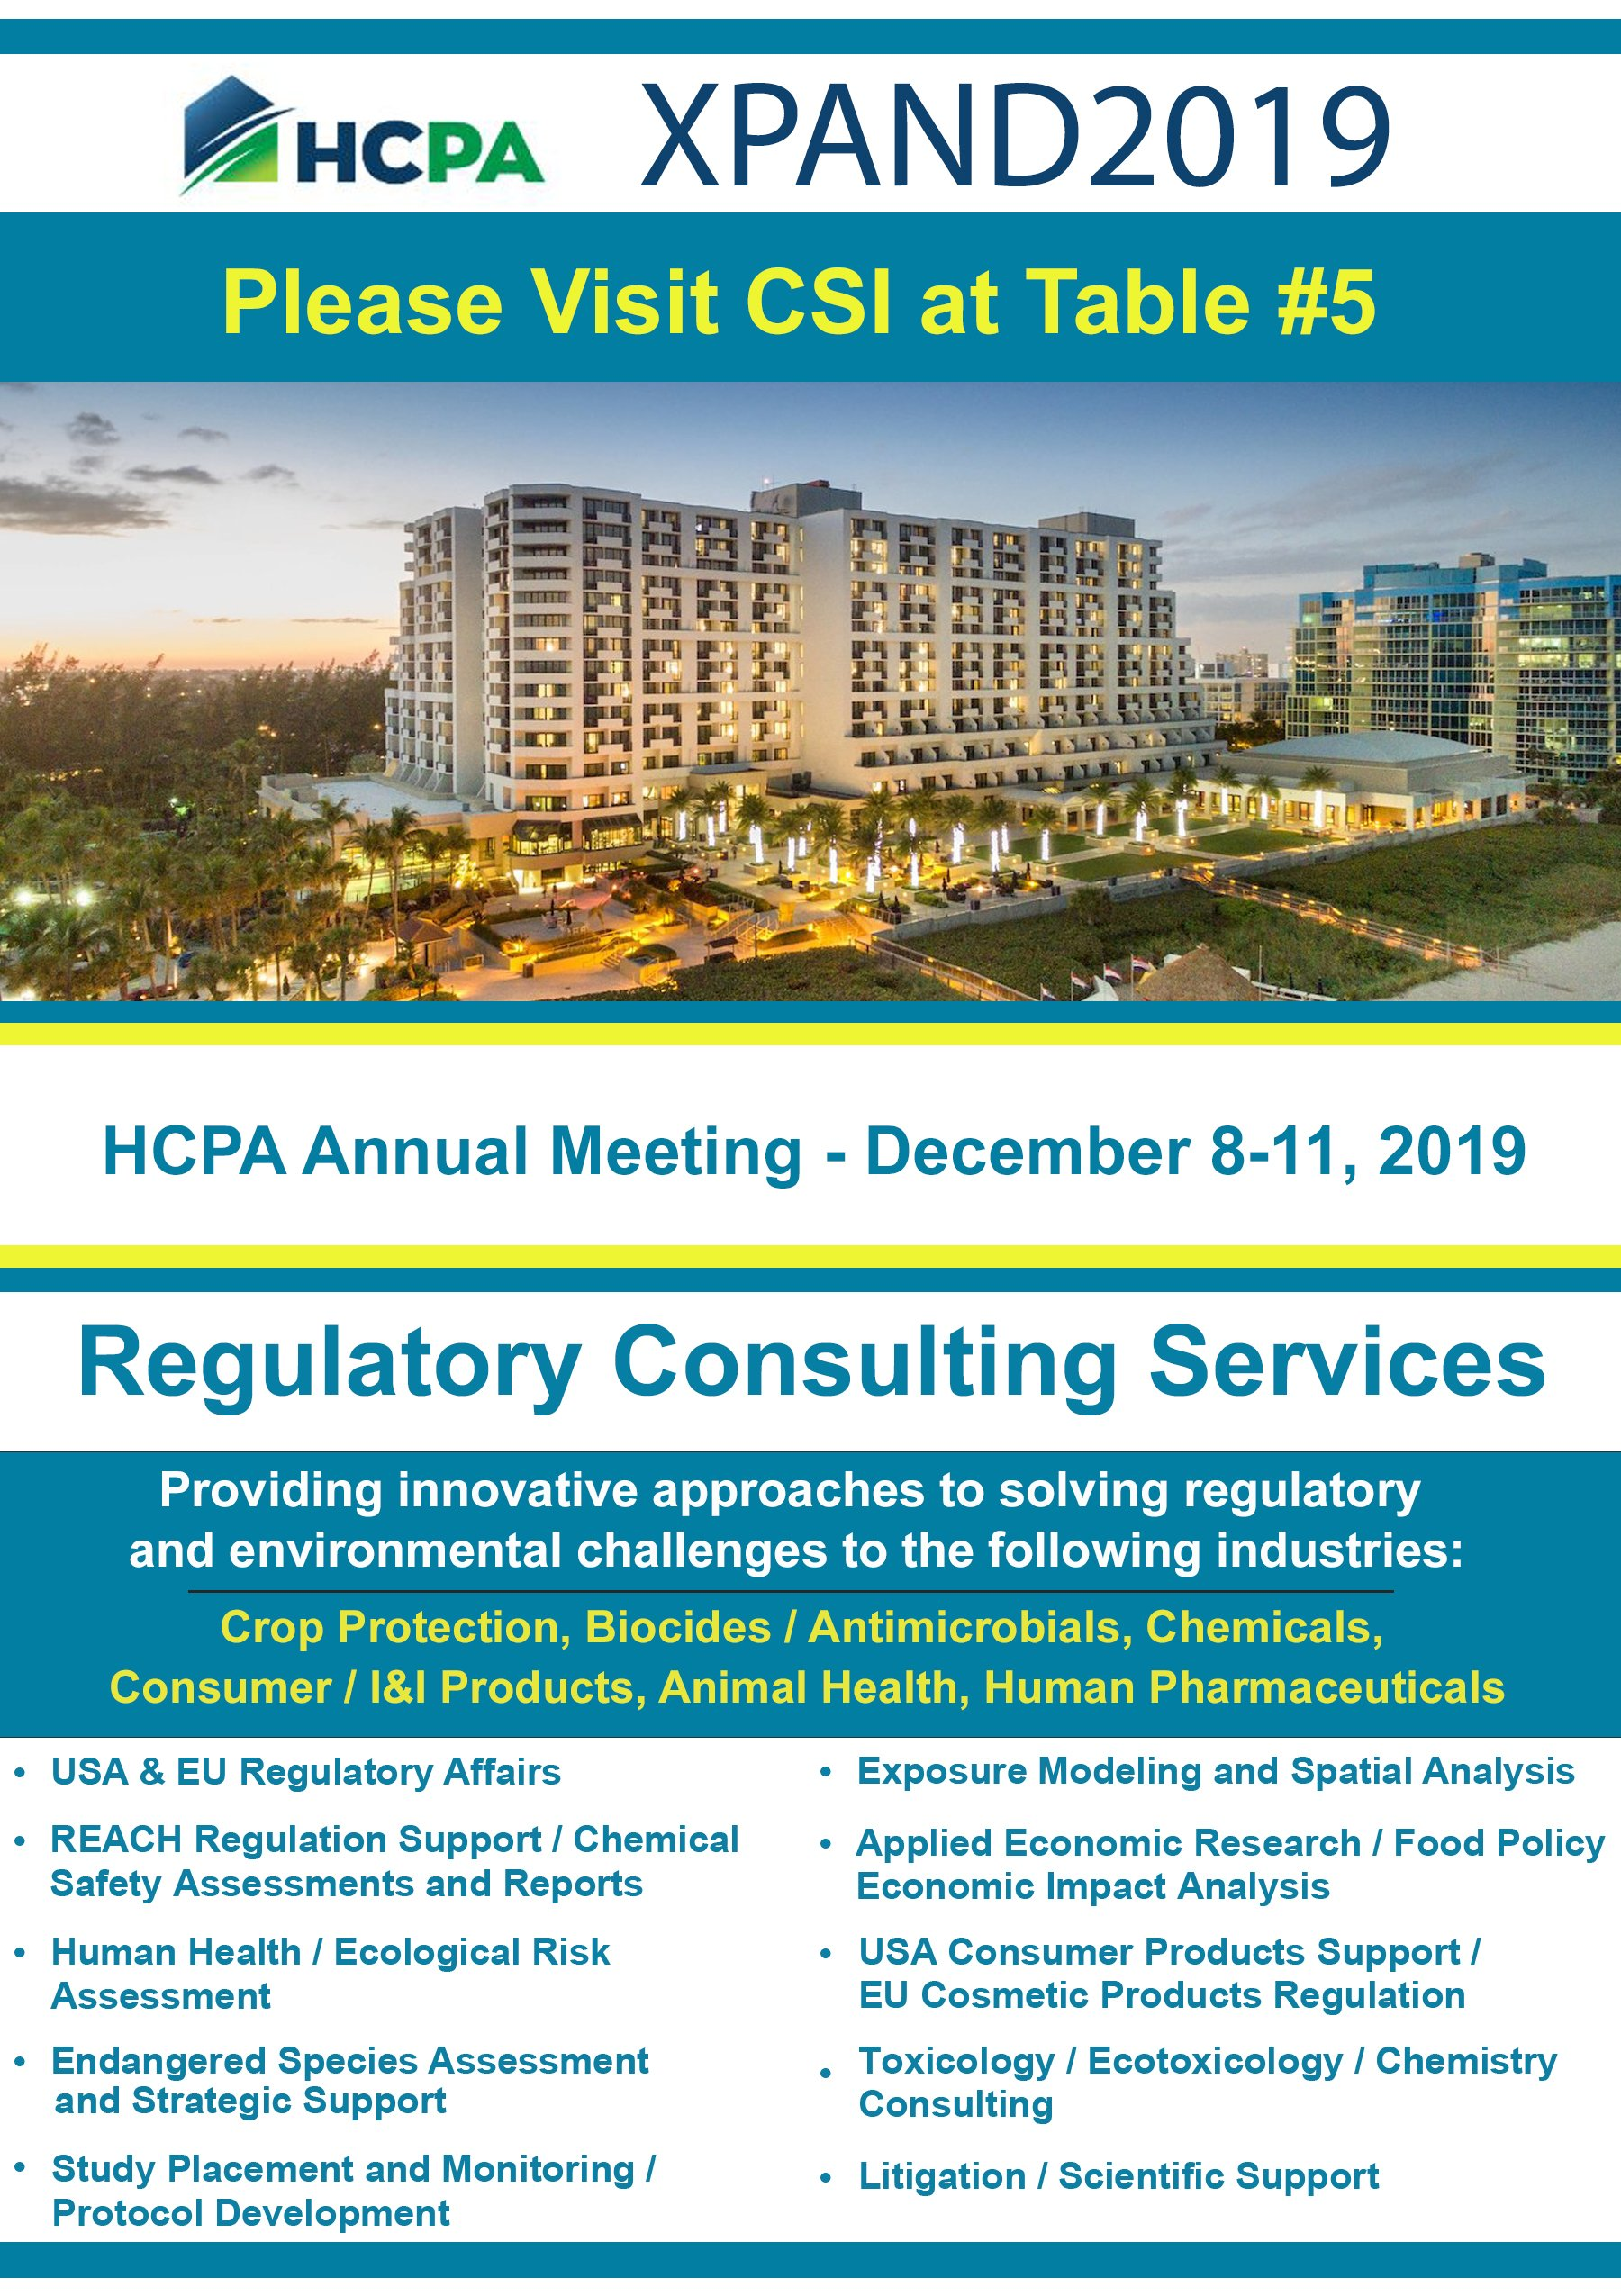 Household and Commercial Products Association (HCPA) Annual Meeting - December 8-11, 2019